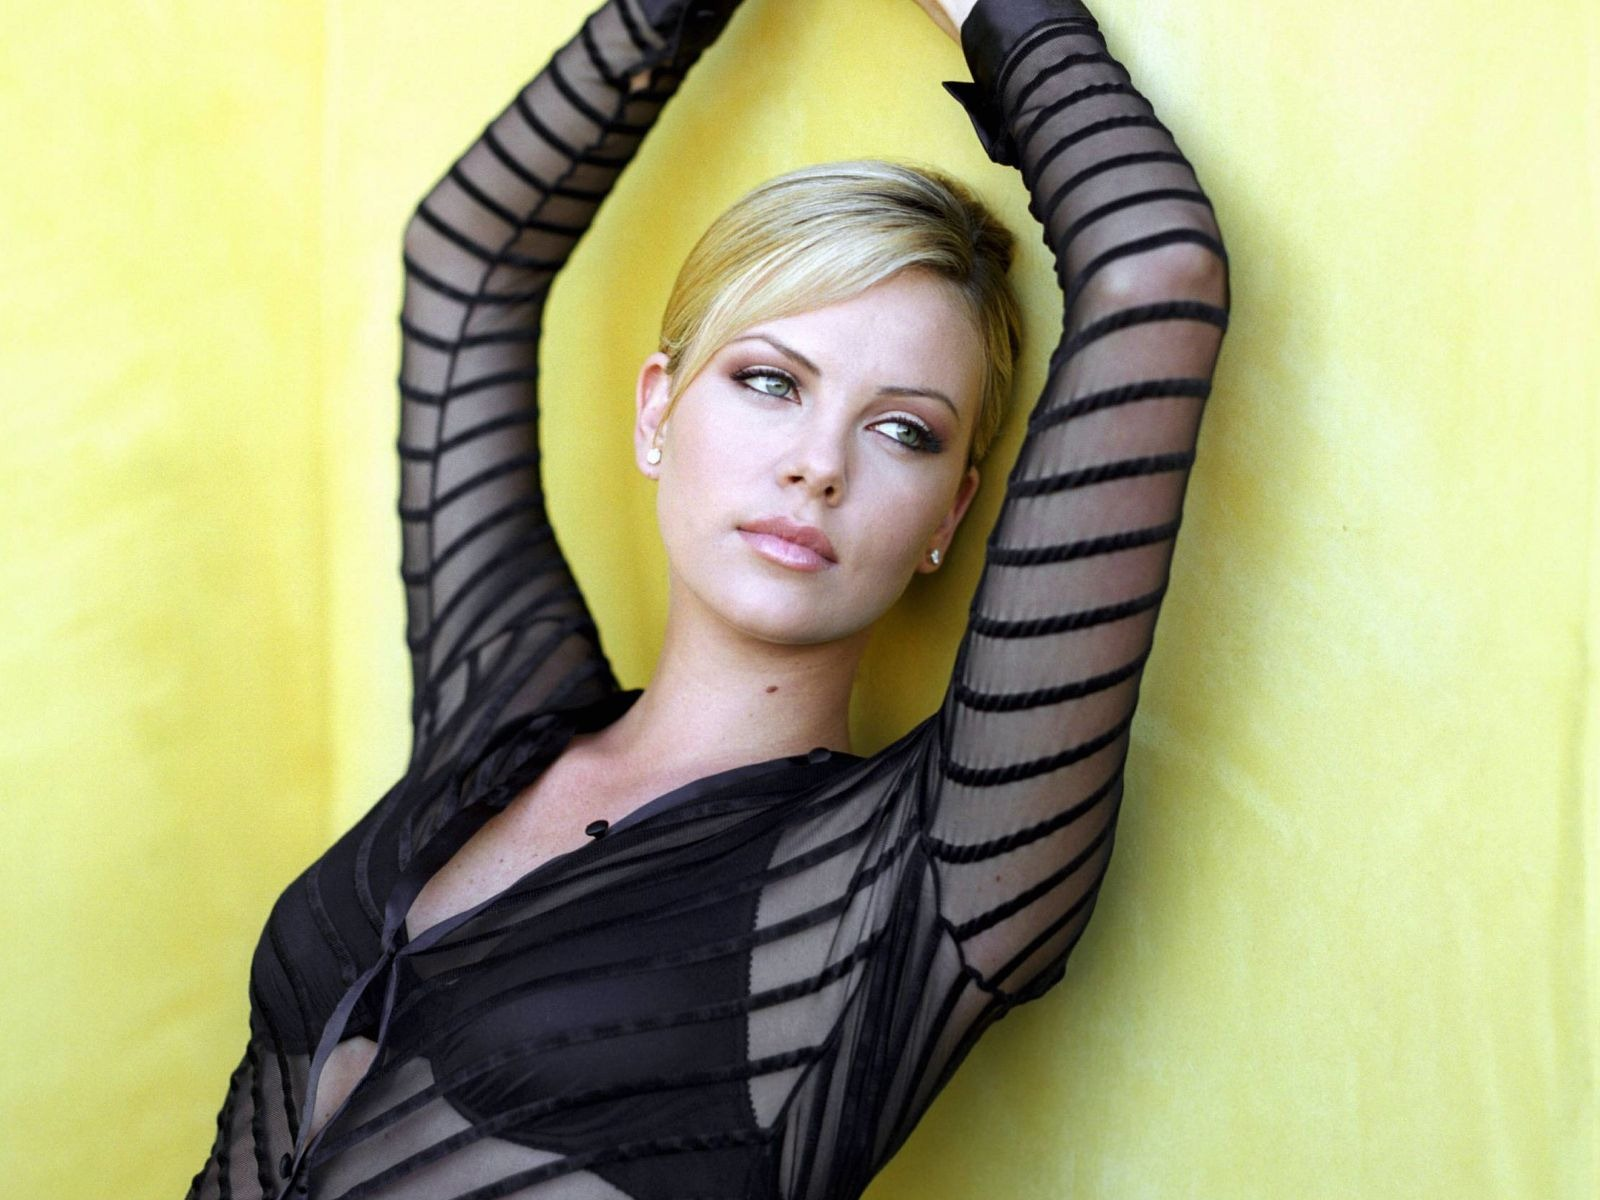 Girls Girls Girls Charlize Theron Hd New Wallpapers 2012